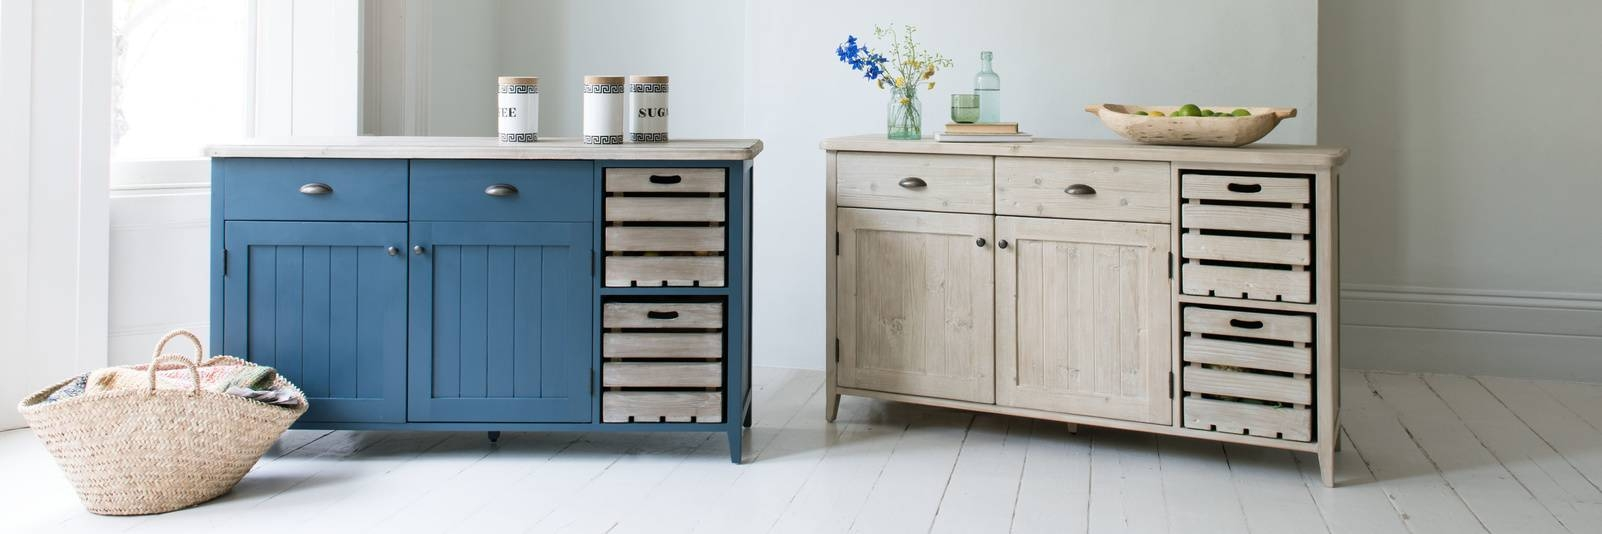 Sideboards | Wooden Storage Sideboards within Storage Sideboards (Image 11 of 15)